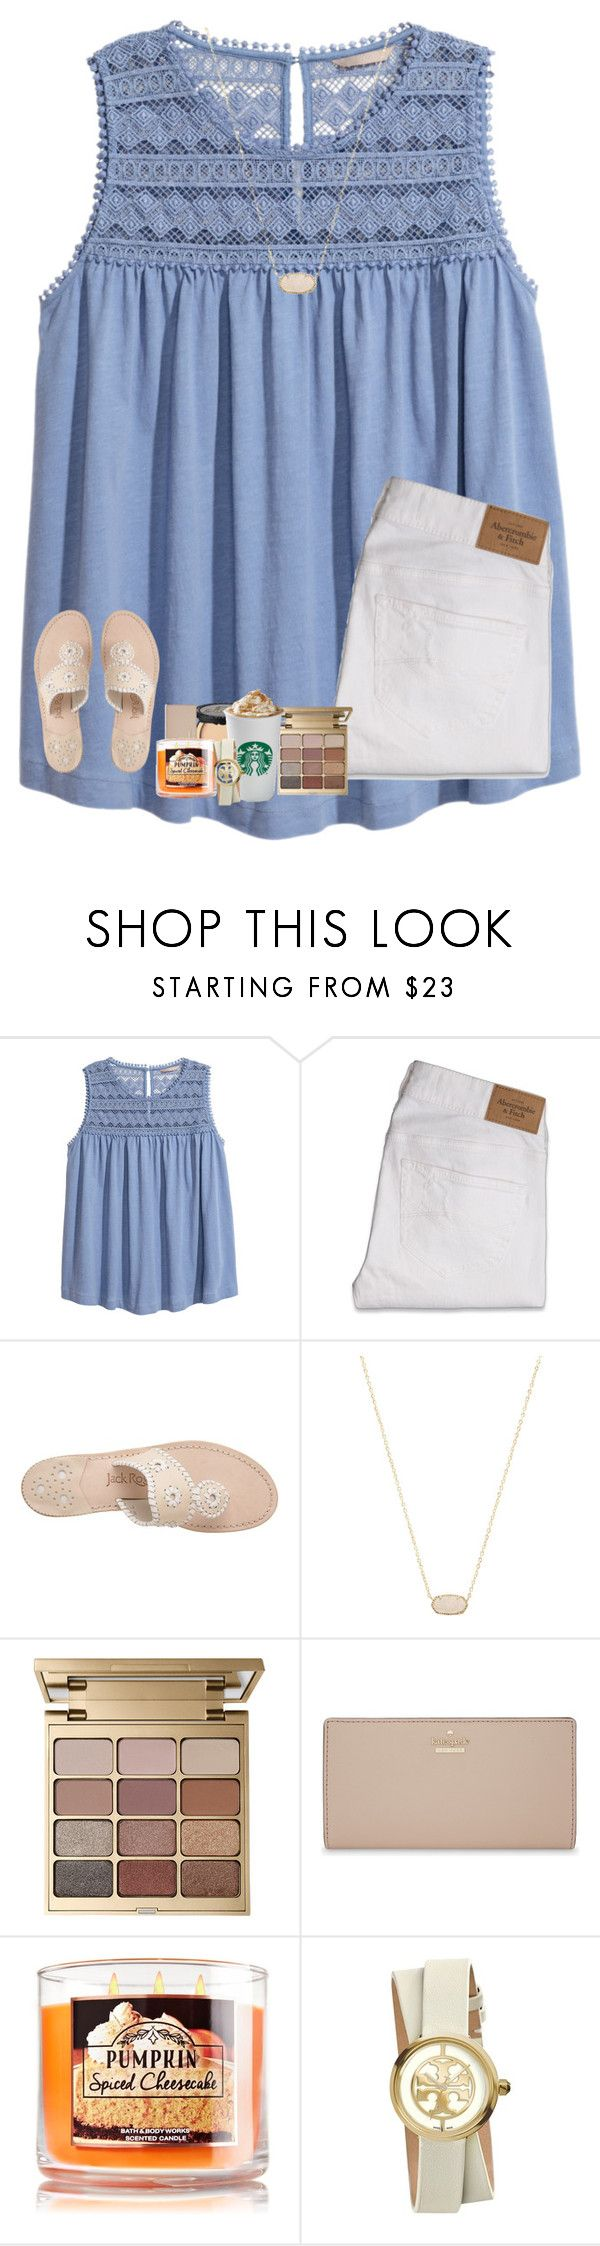 """kinda for fall¿"" by rileykleiin ❤ liked on Polyvore featuring H&M, Abercrombie & Fitch, Jack Rogers, Kendra Scott, Stila, Too Faced Cosmetics, Kate Spade and Tory Burch"